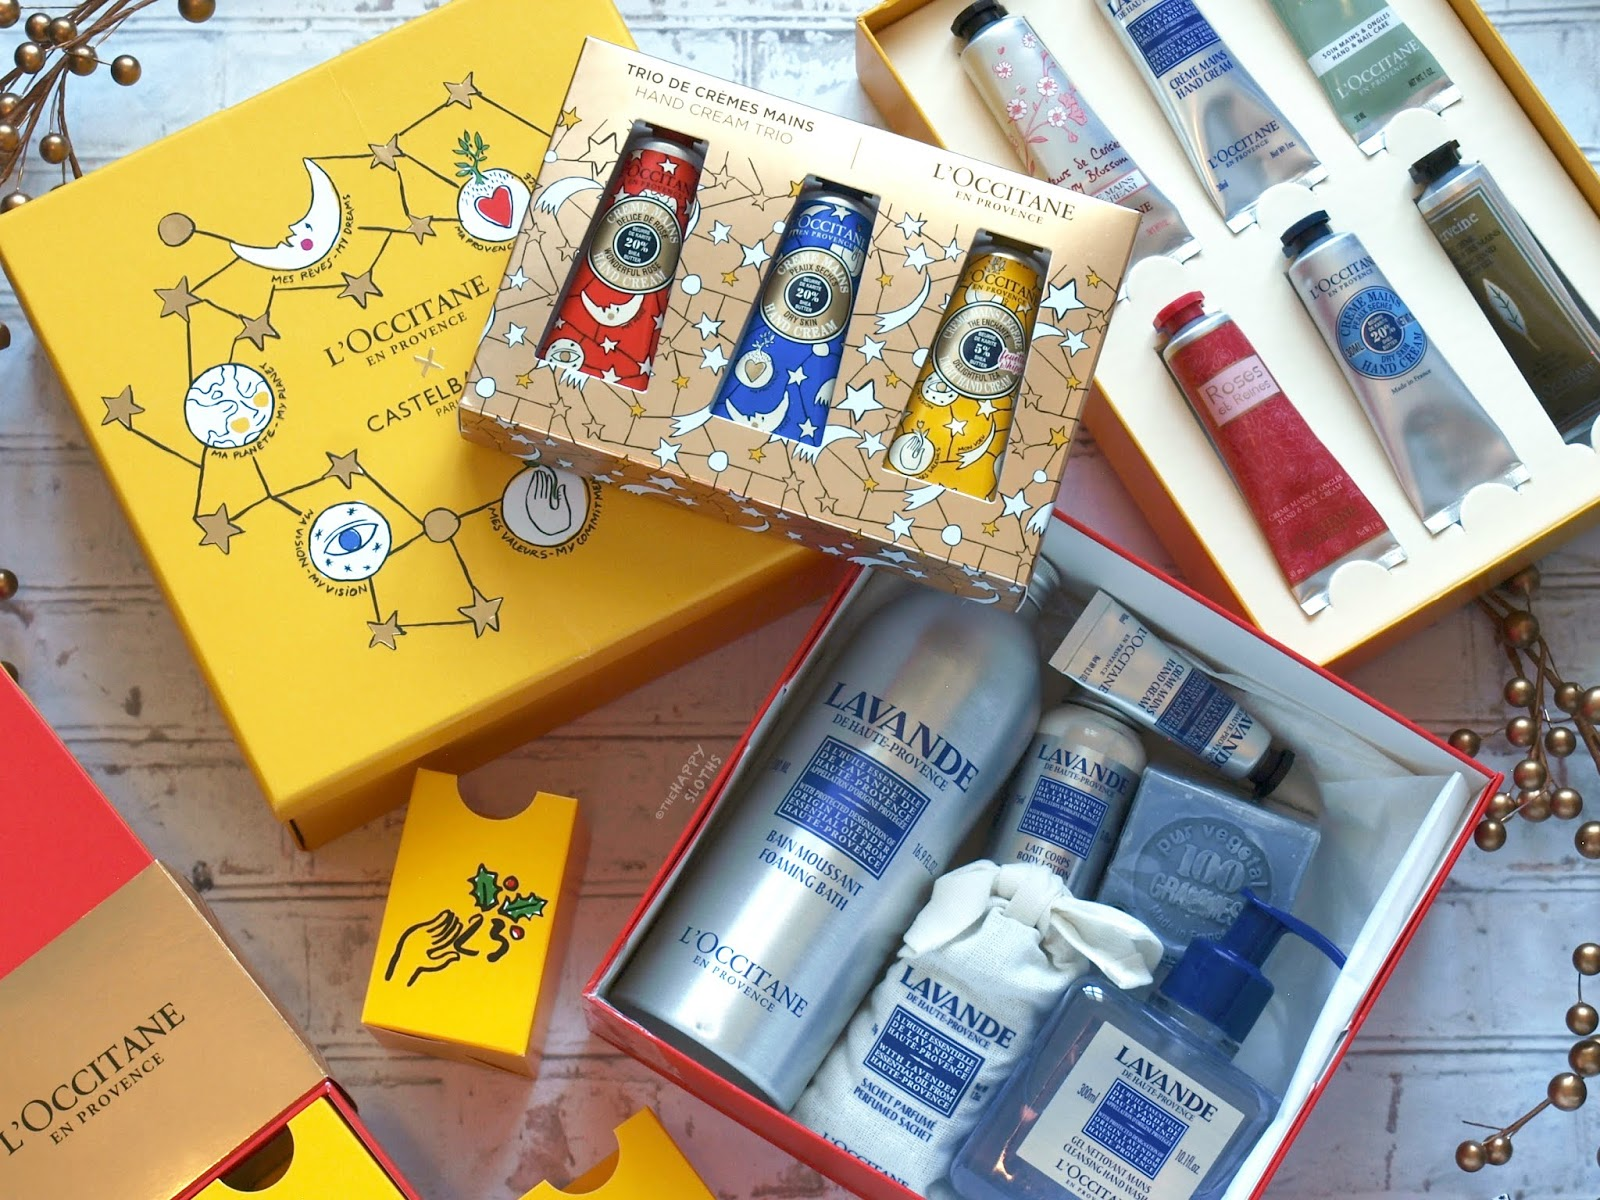 L'Occitane x Castelbajac Holiday 2018 Collection: Gift Guide